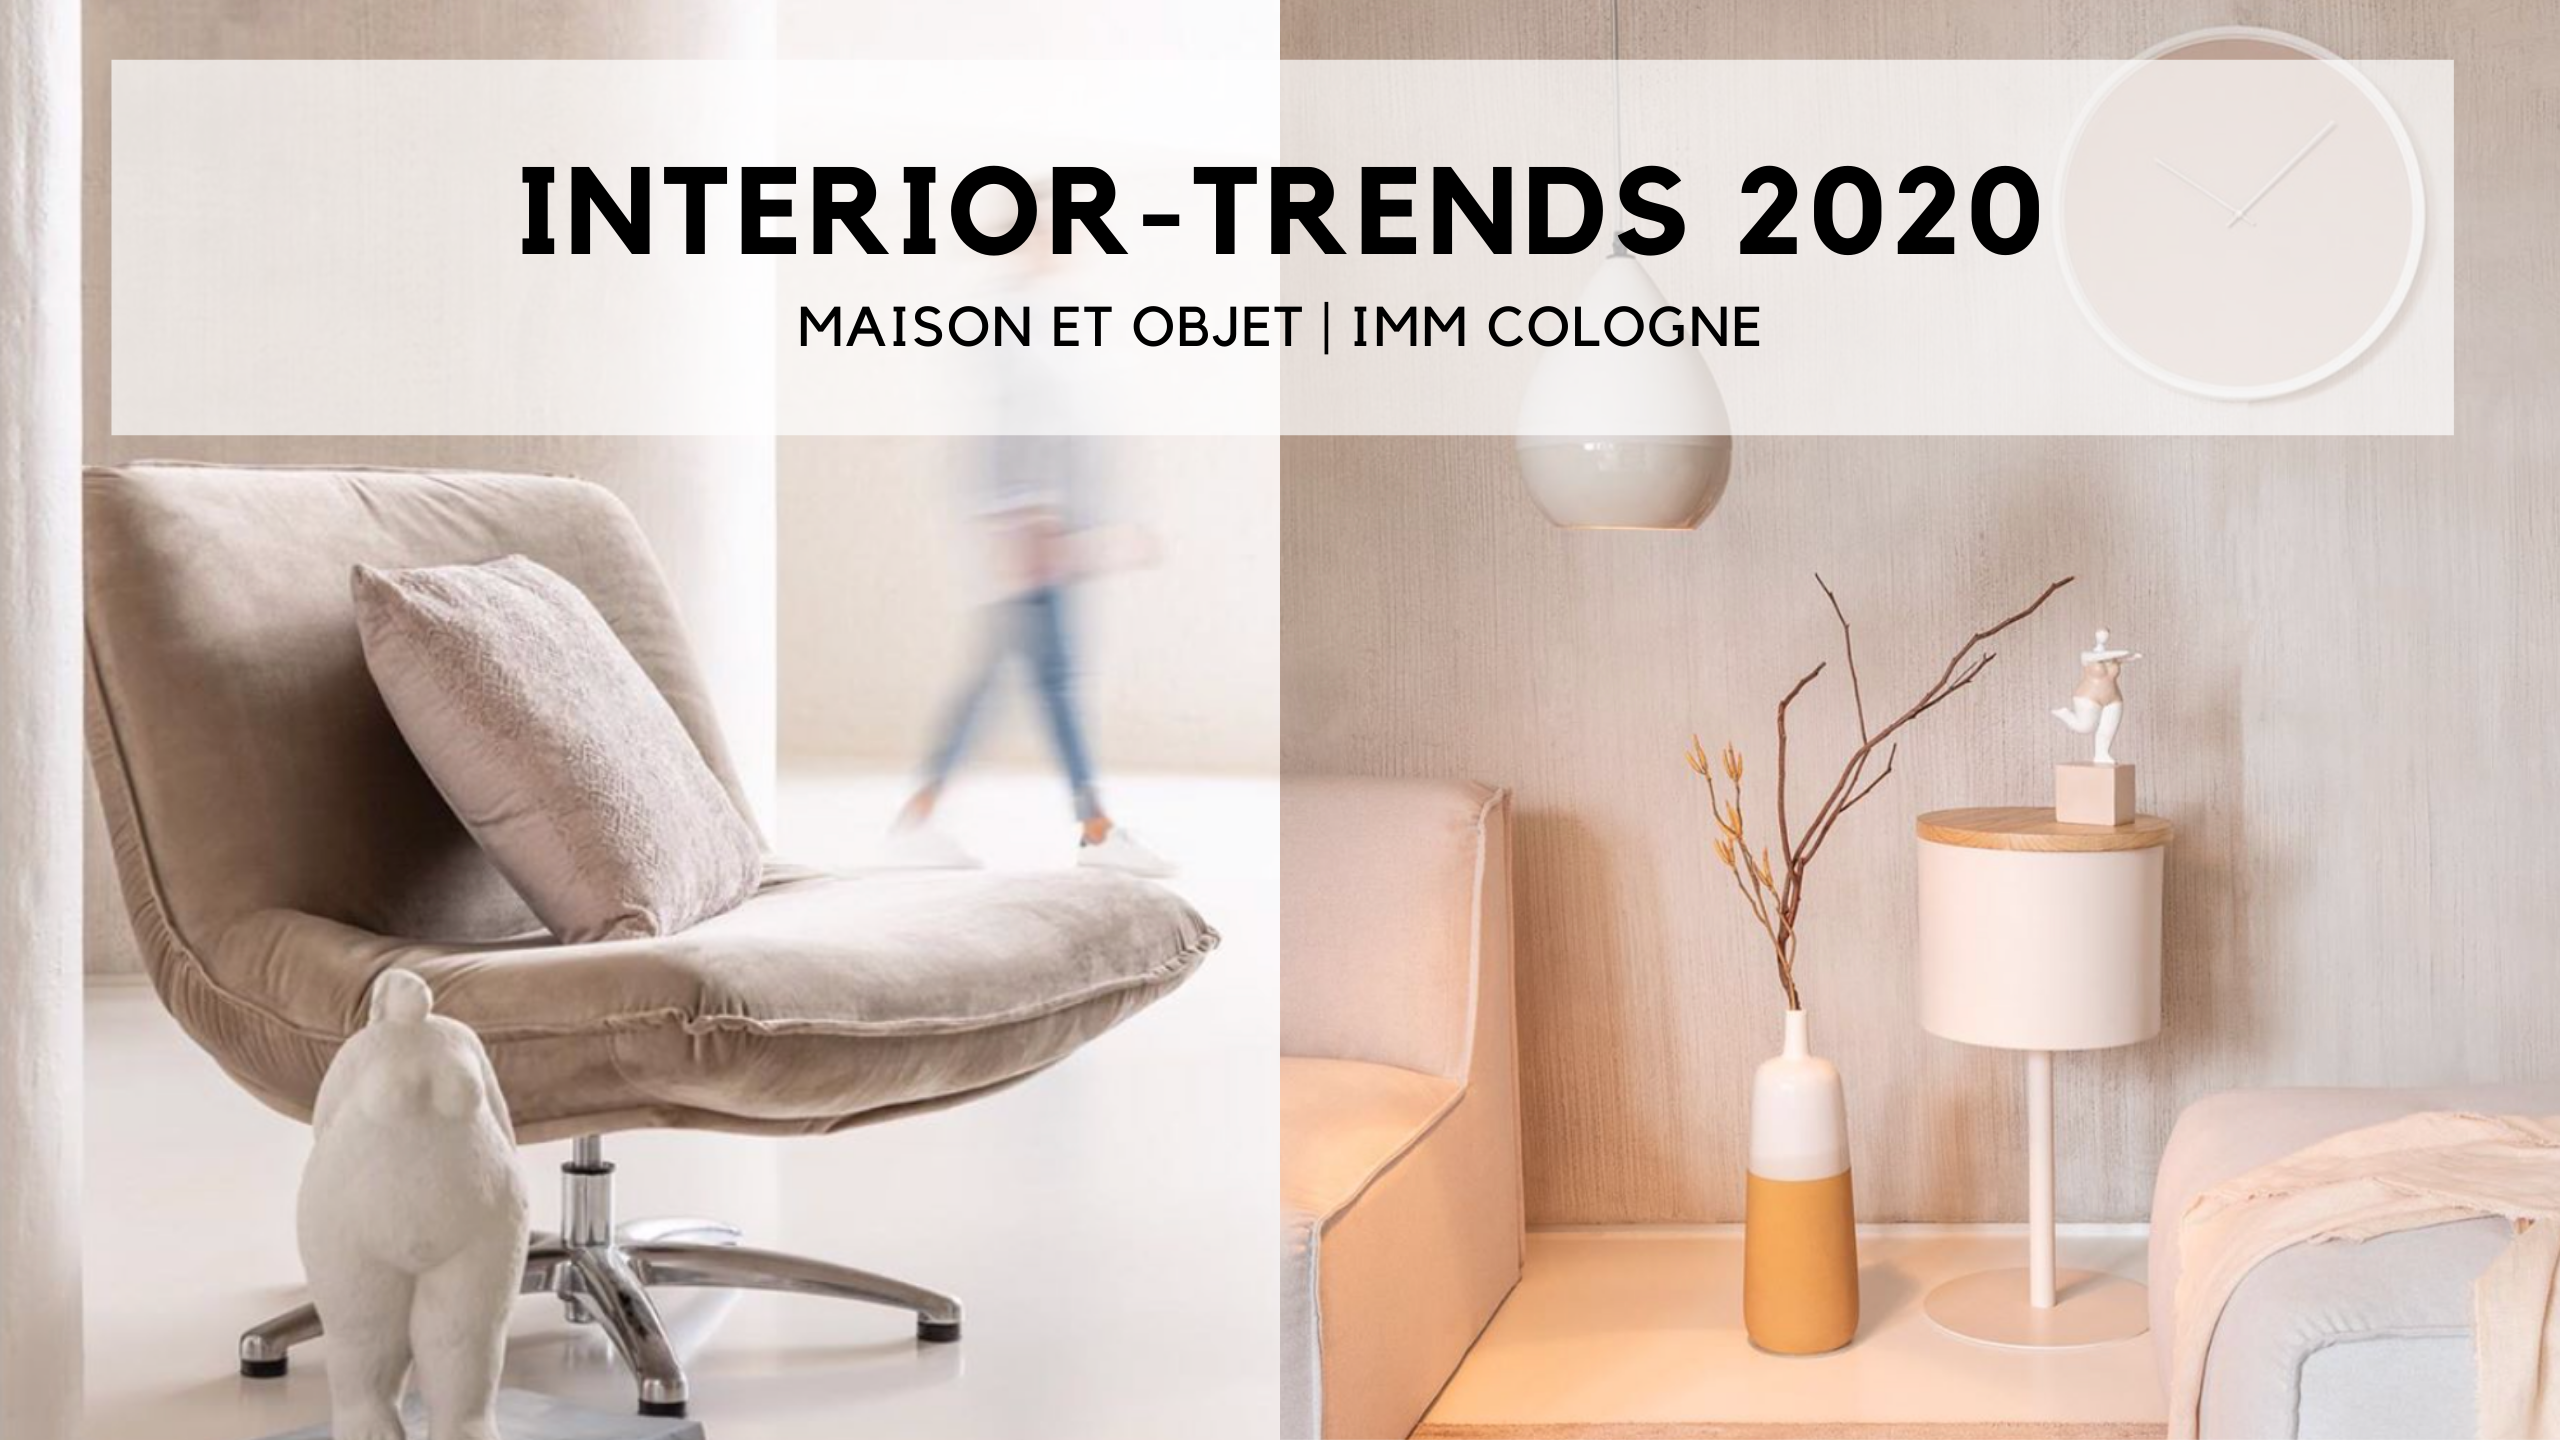 Interior-Trends2020 | by Andy - for better moods